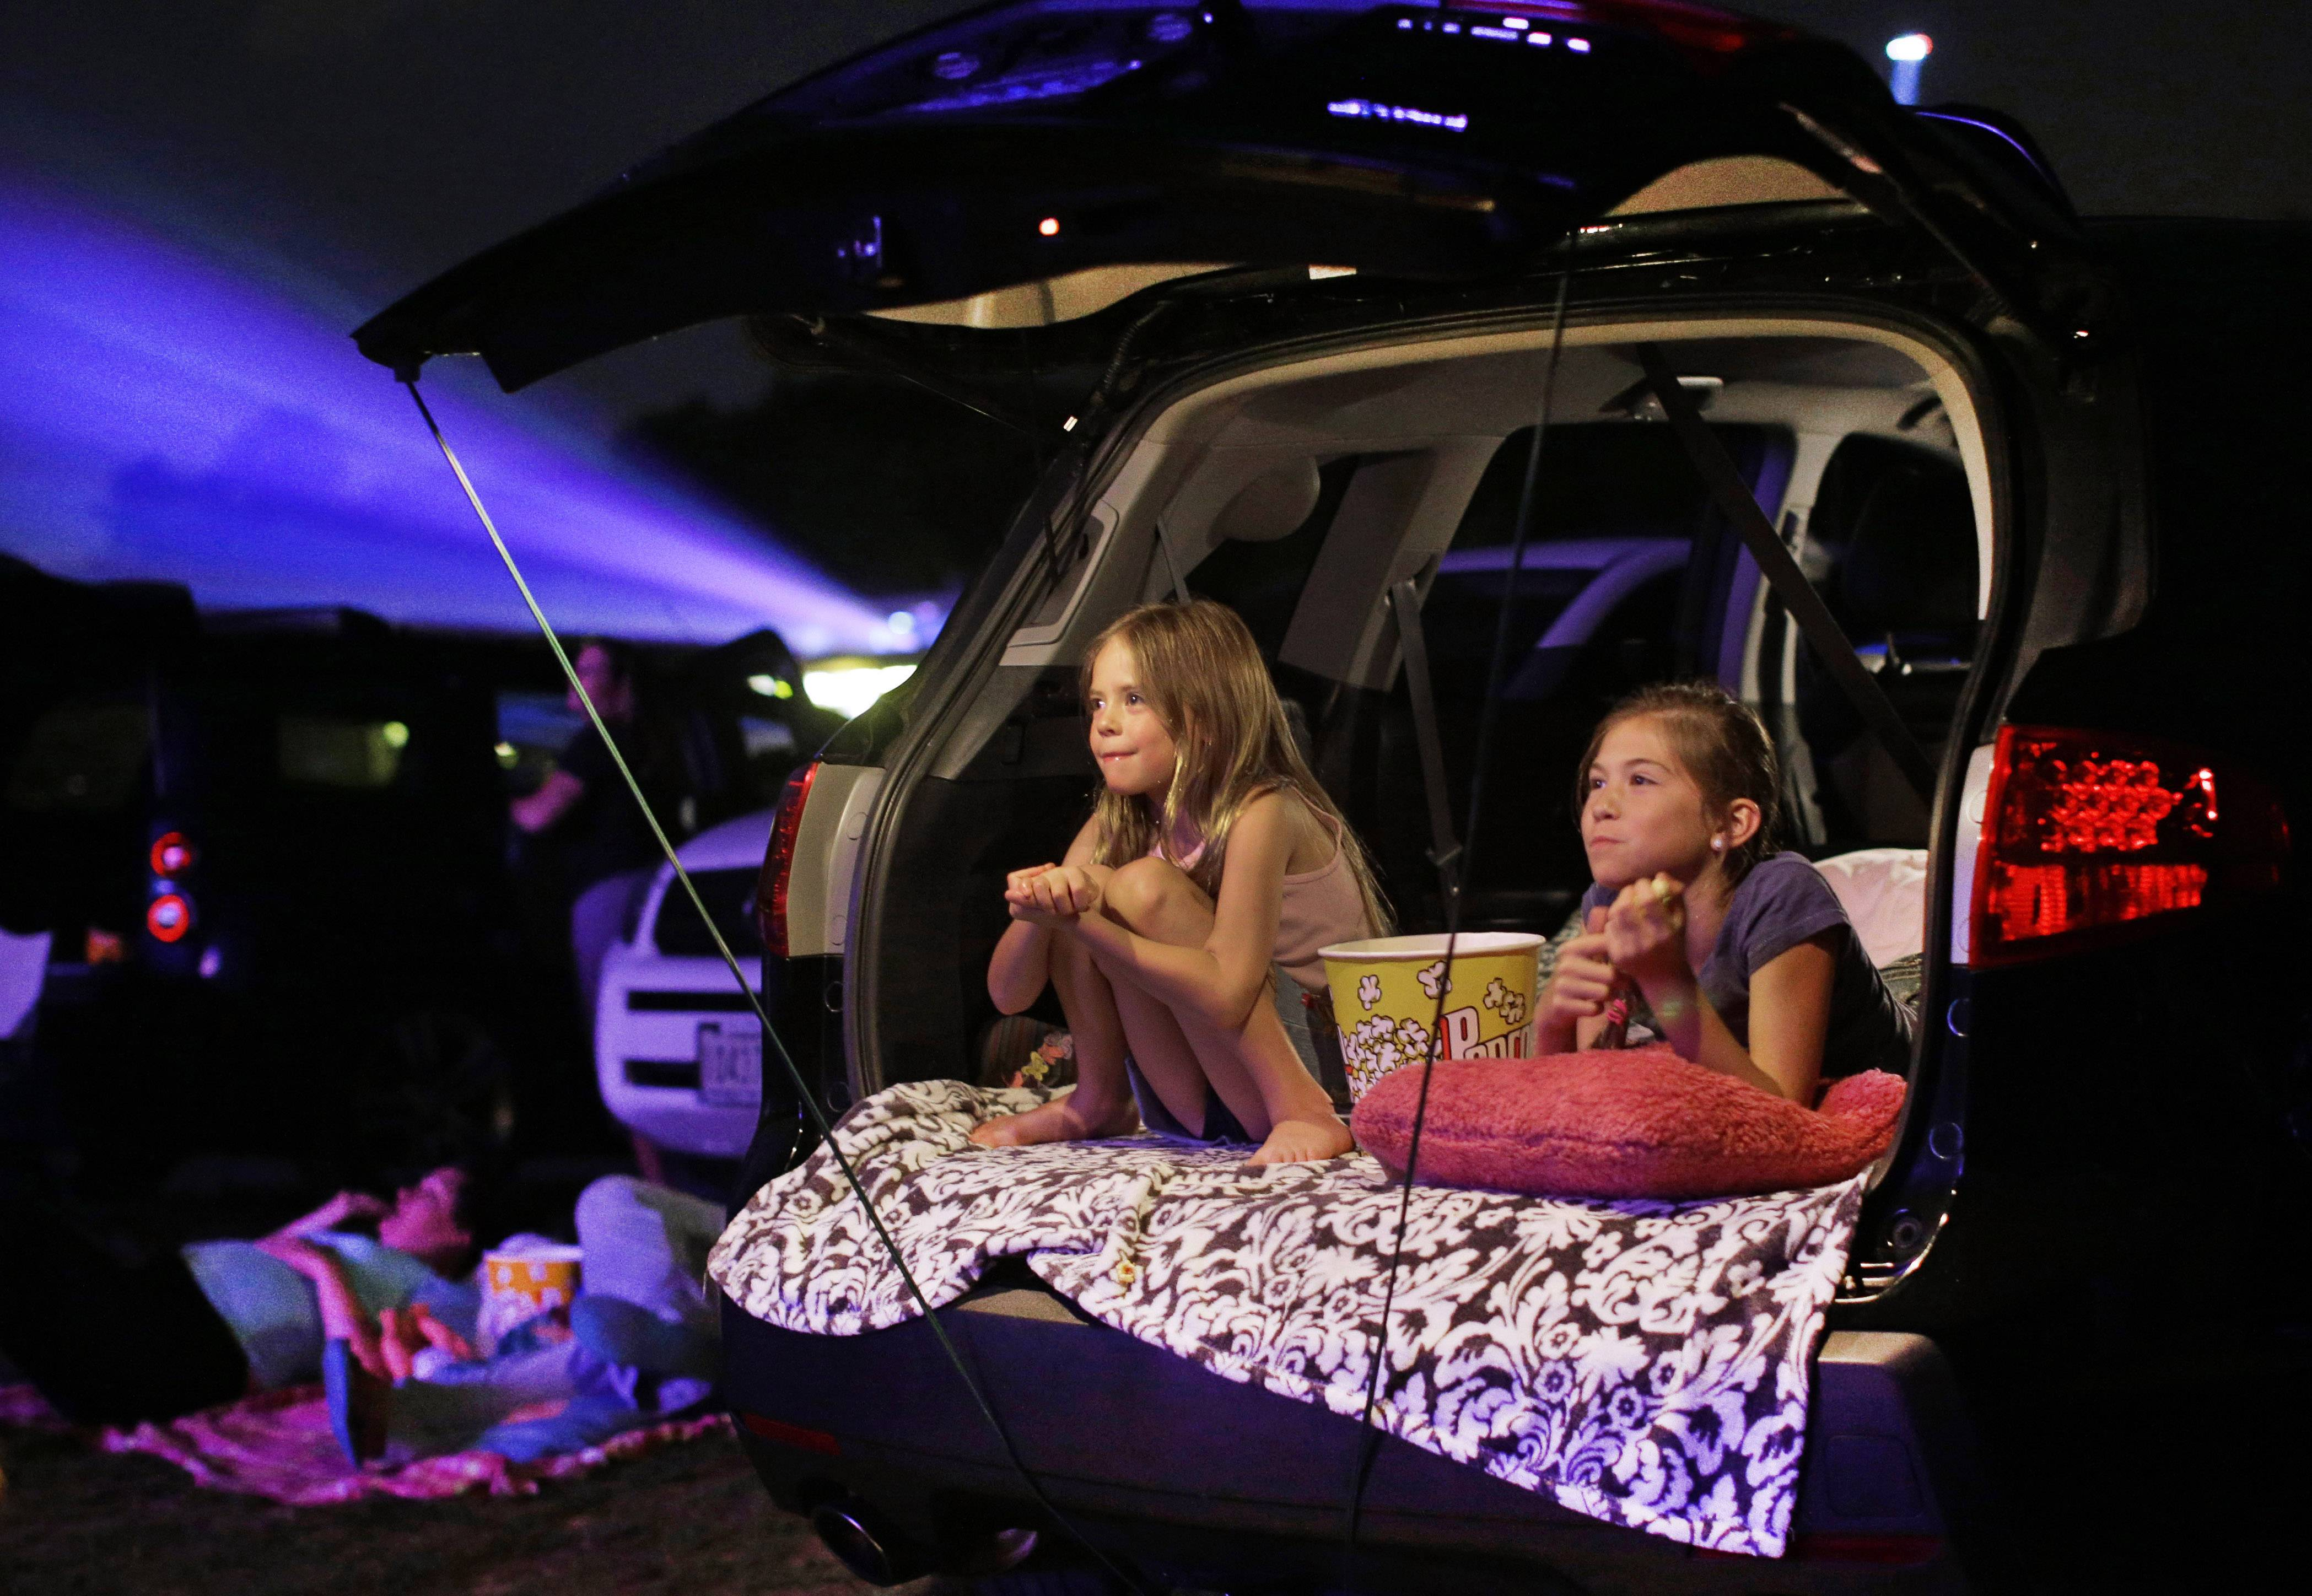 Maddie Essig, left, 10, watches a movie with her sister, Claire, 6, from the tailgate of their parents' vechicle at Bengies Drive-In Theatre in Middle River, Md. Drive-in movie theaters, which numbered 4,300 in 1957, have dwindled to just 350.